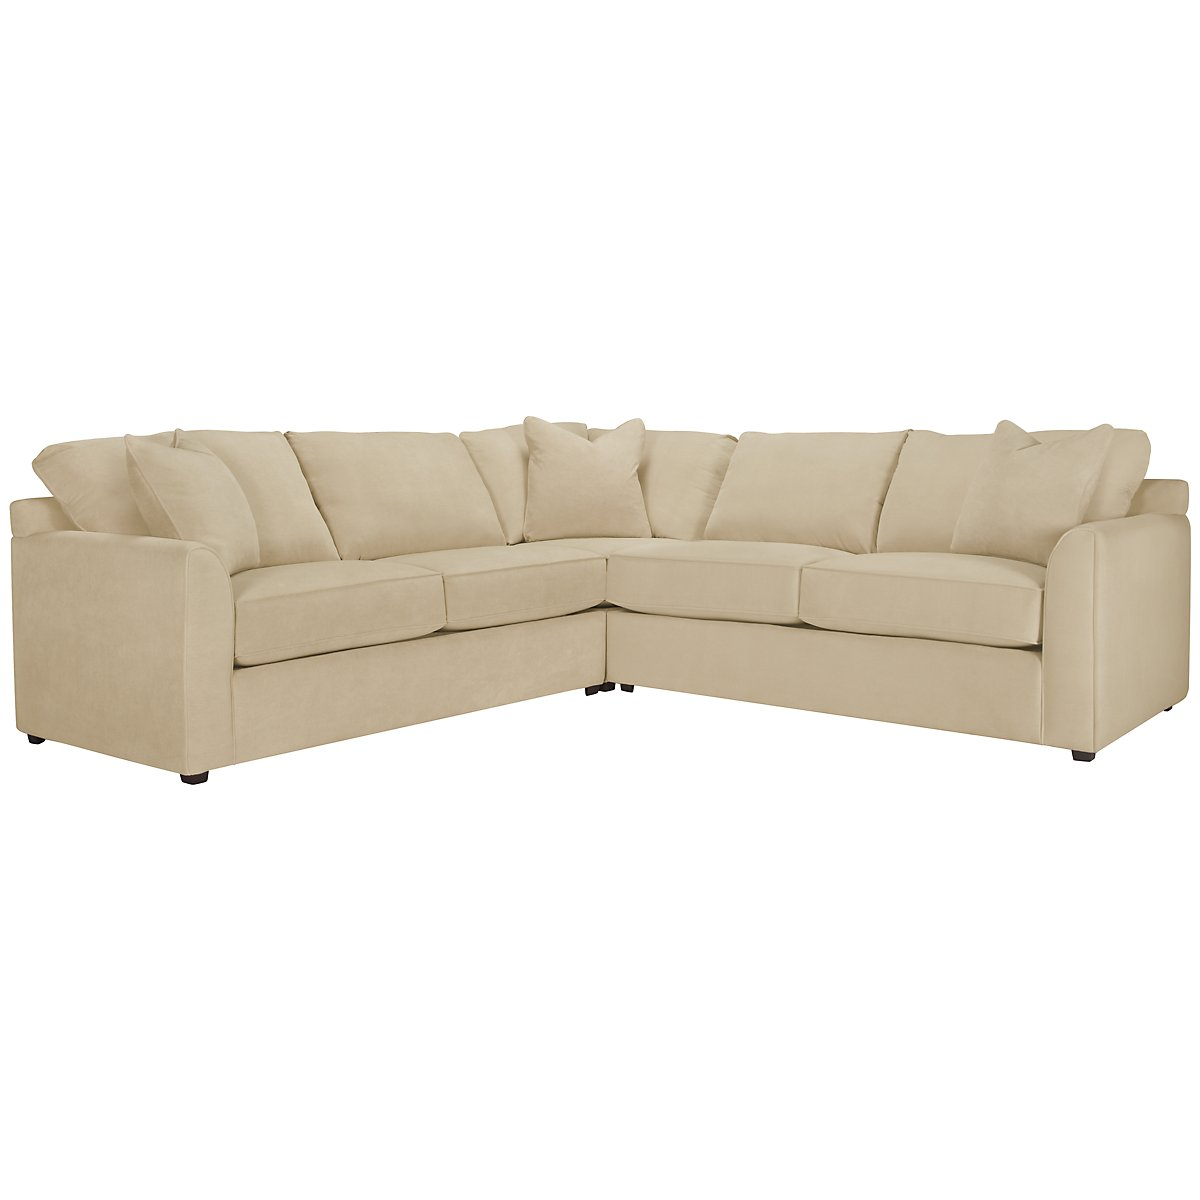 Express3 Lt Beige Microfiber Small Two-Arm Sectional